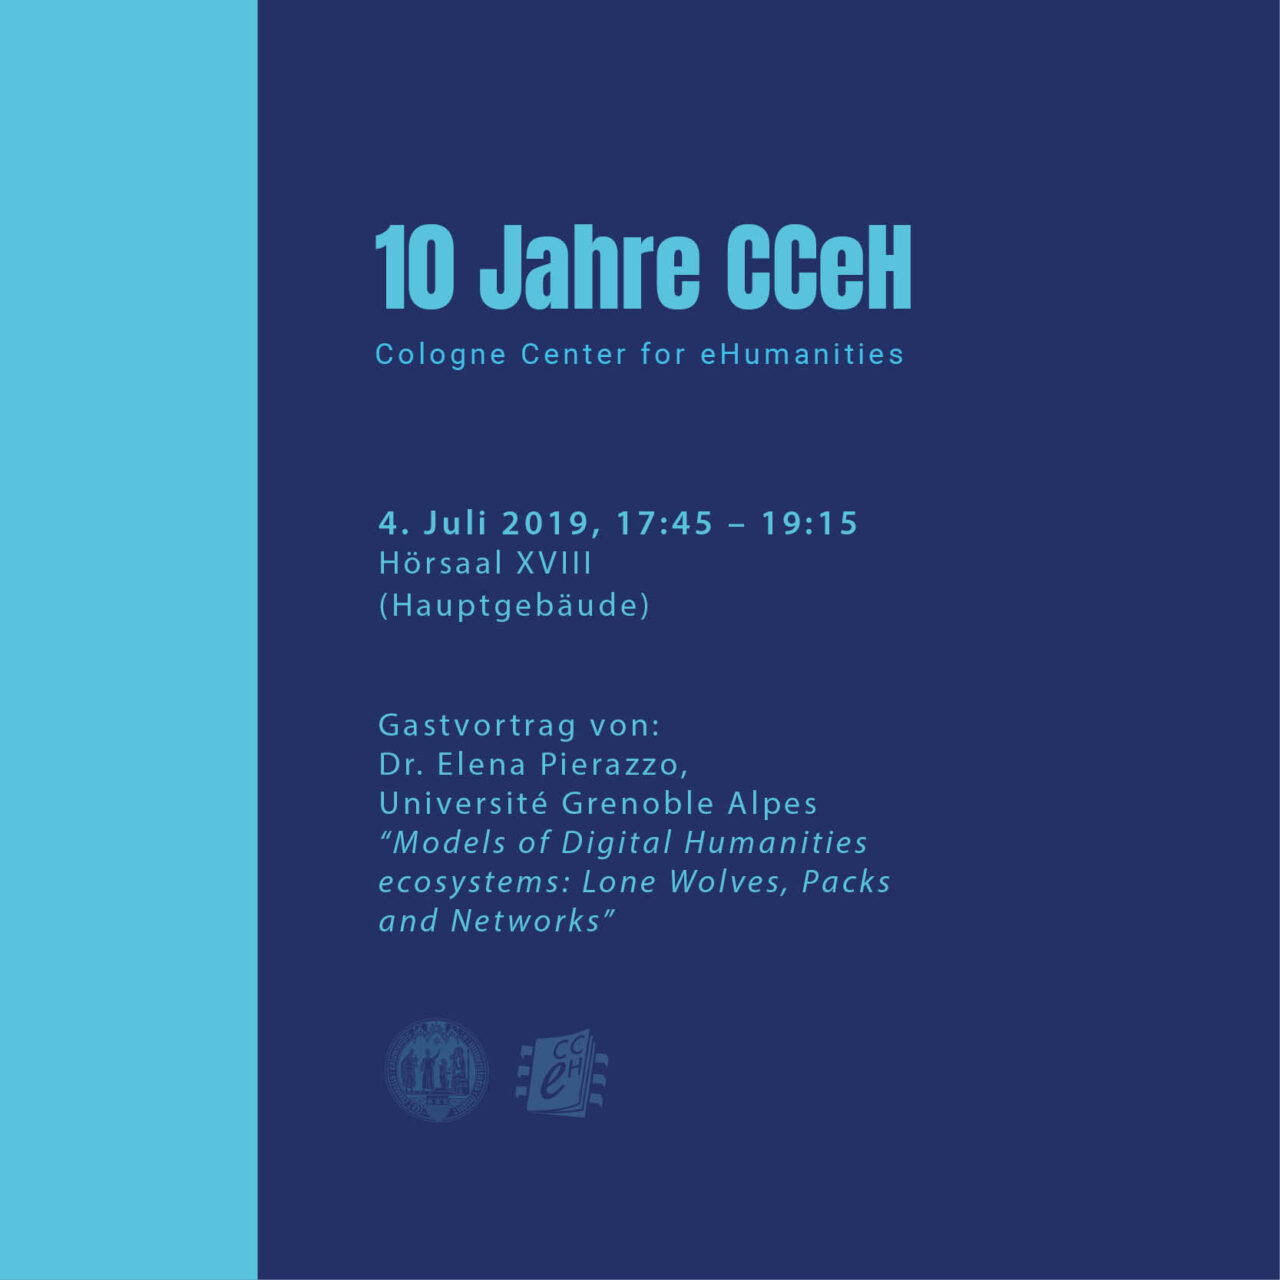 poster advertising the 10 year anniversary of the CCeH